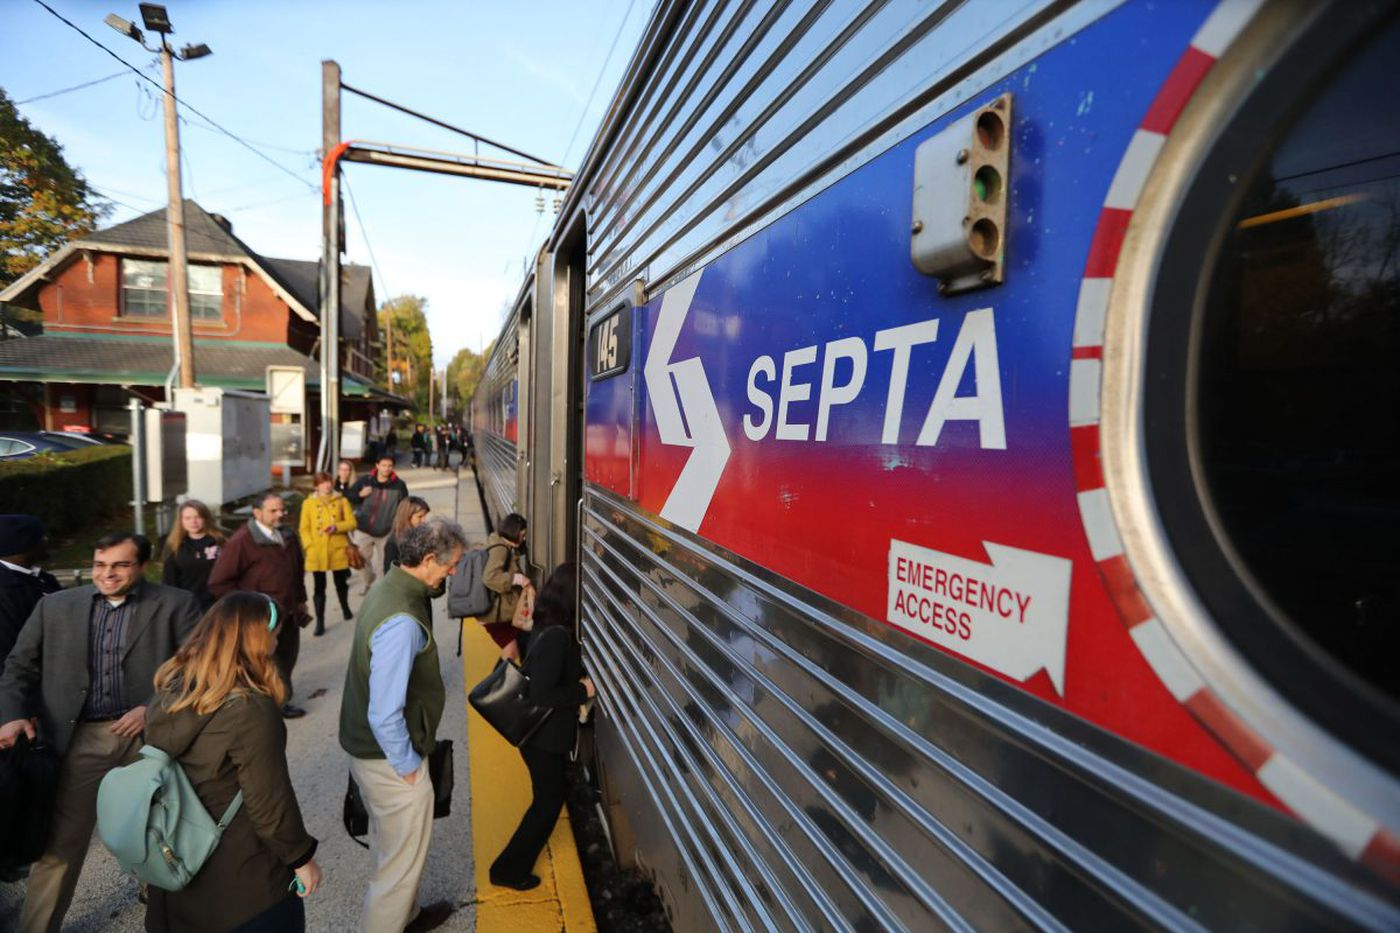 Normal service resumes on SEPTA's West Trenton line